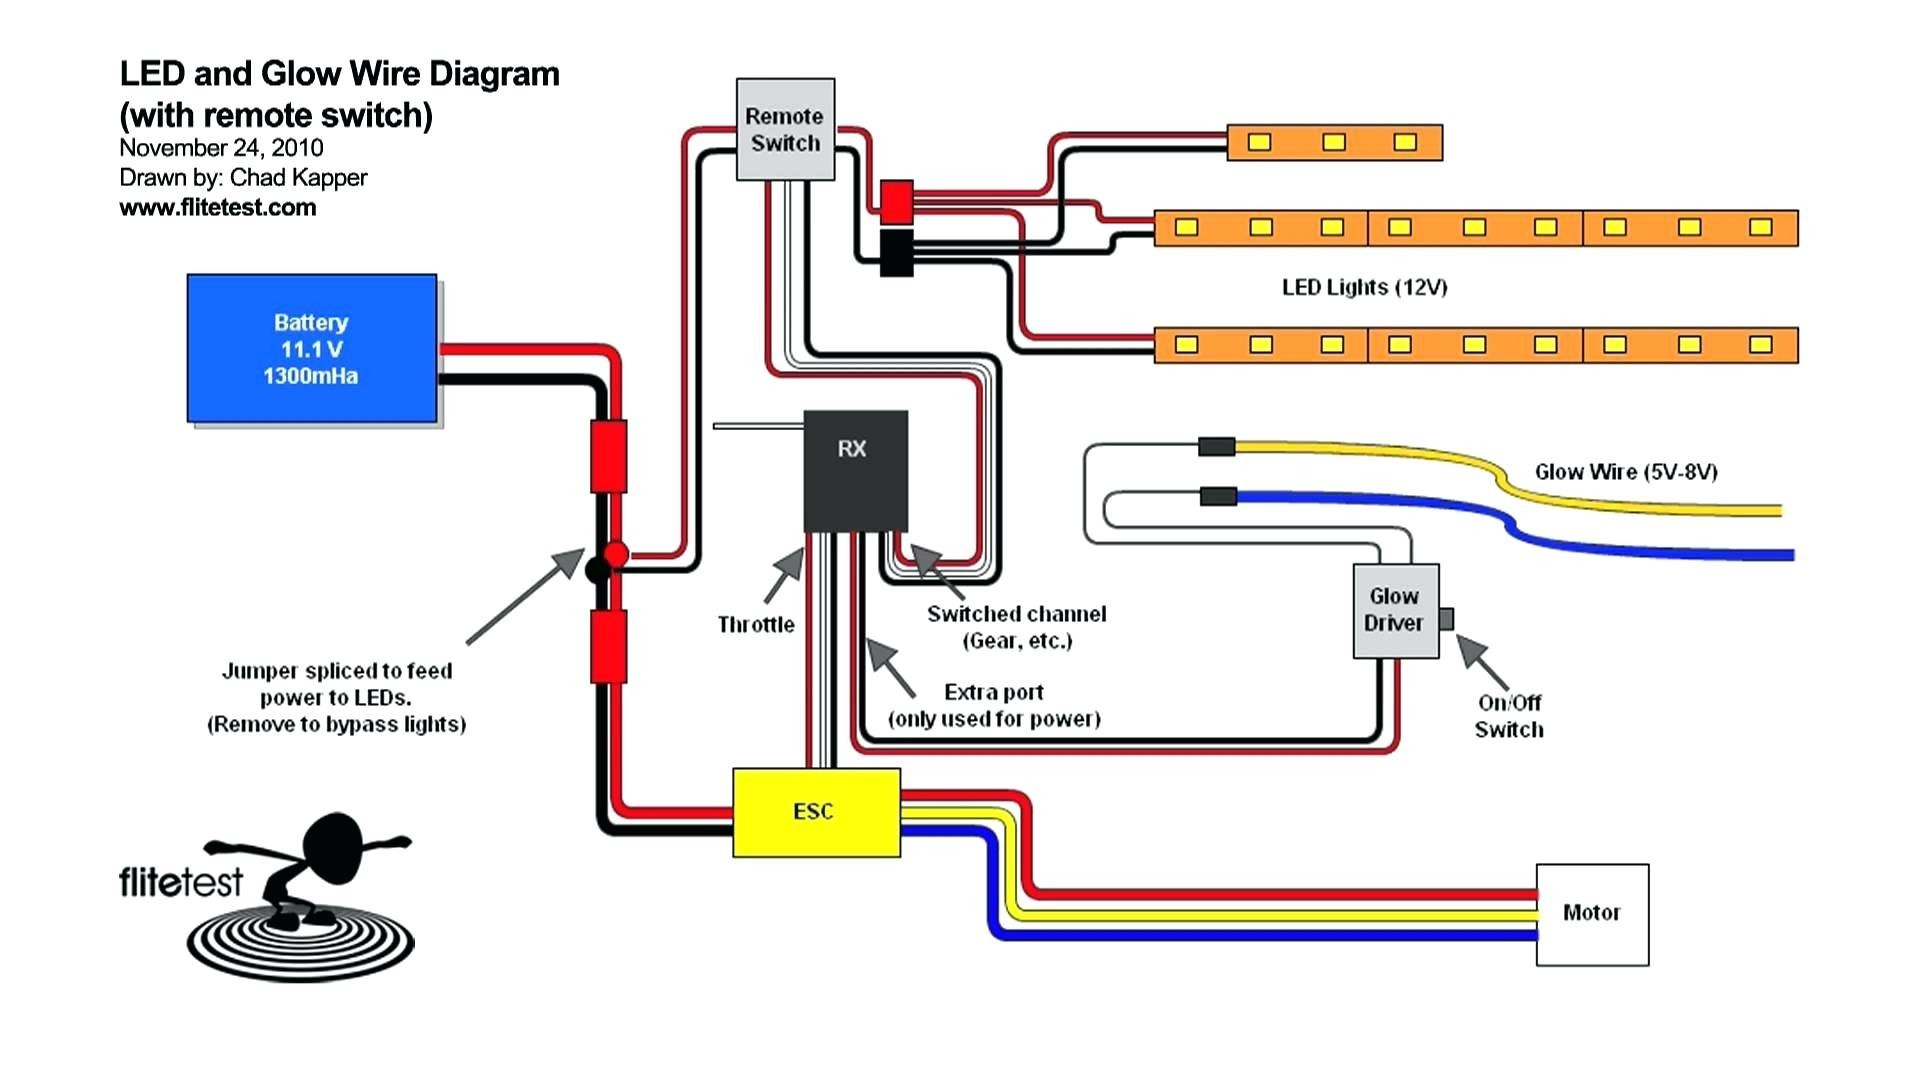 Wiring Diagram For 120v Led Light Electrical Circuit Strip Pdf Trusted Diagrams U2022 Photocell